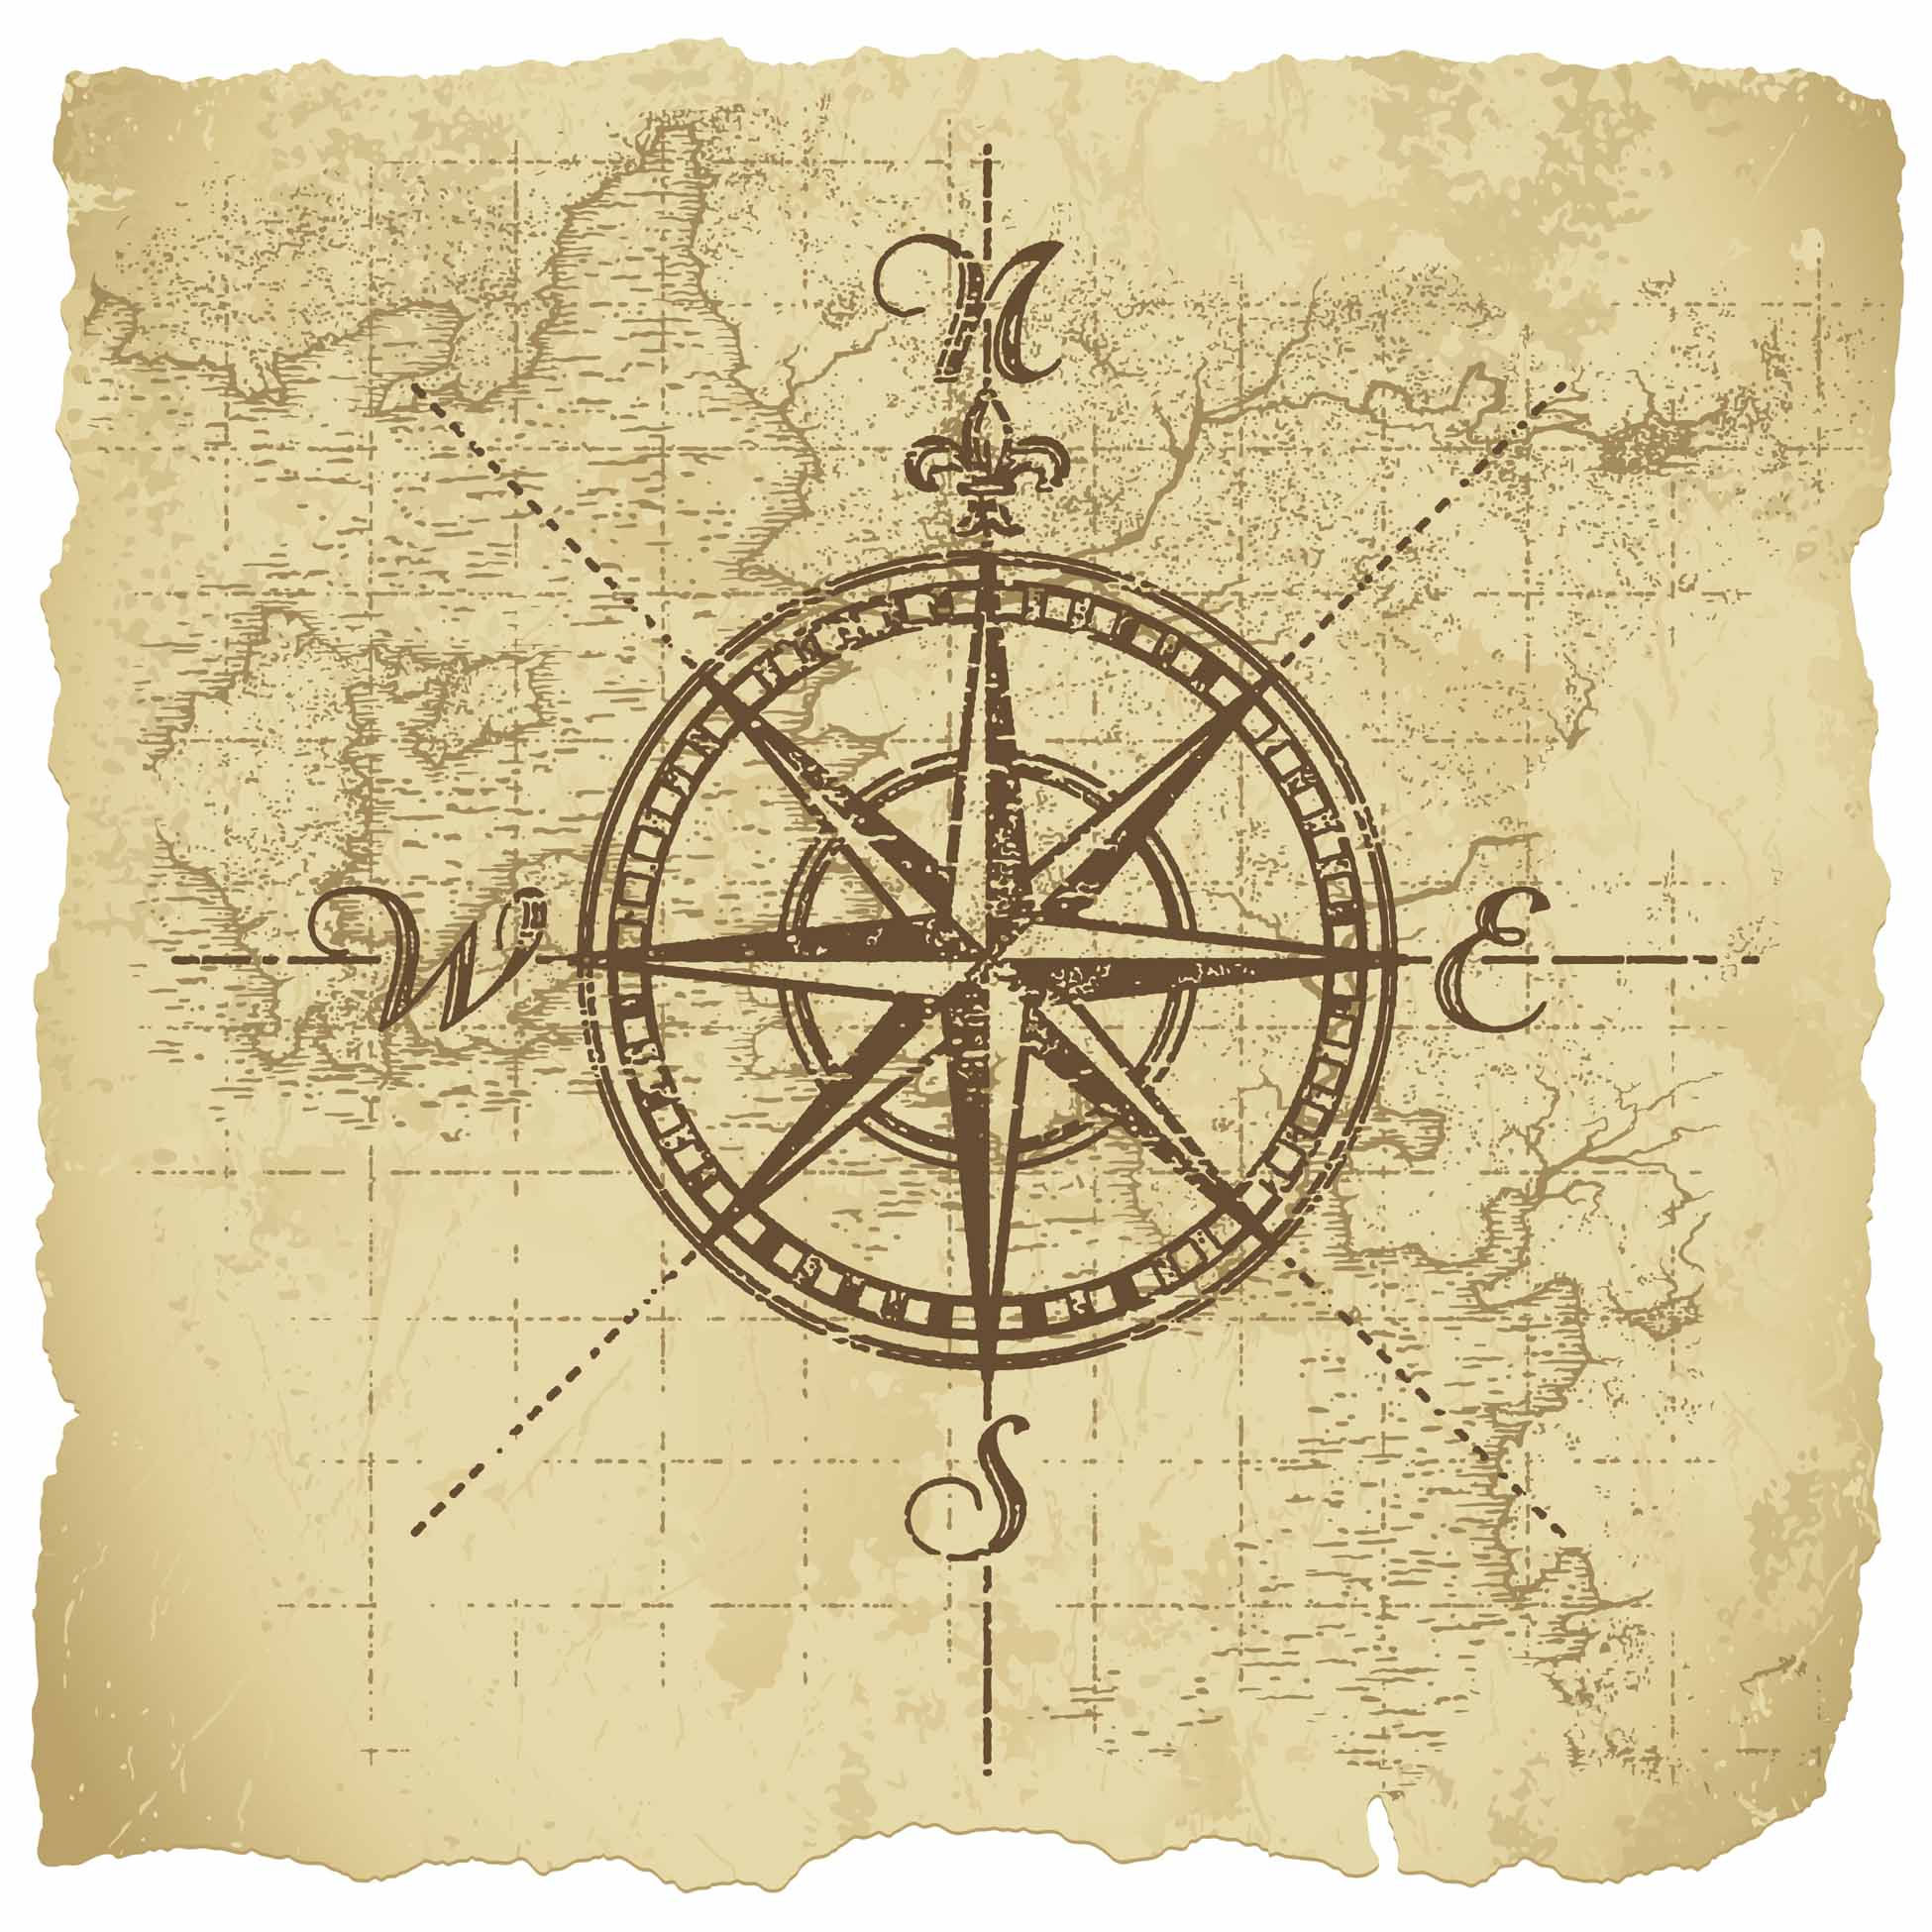 Drawn compass old world  Google Tattoo Pinterest Search